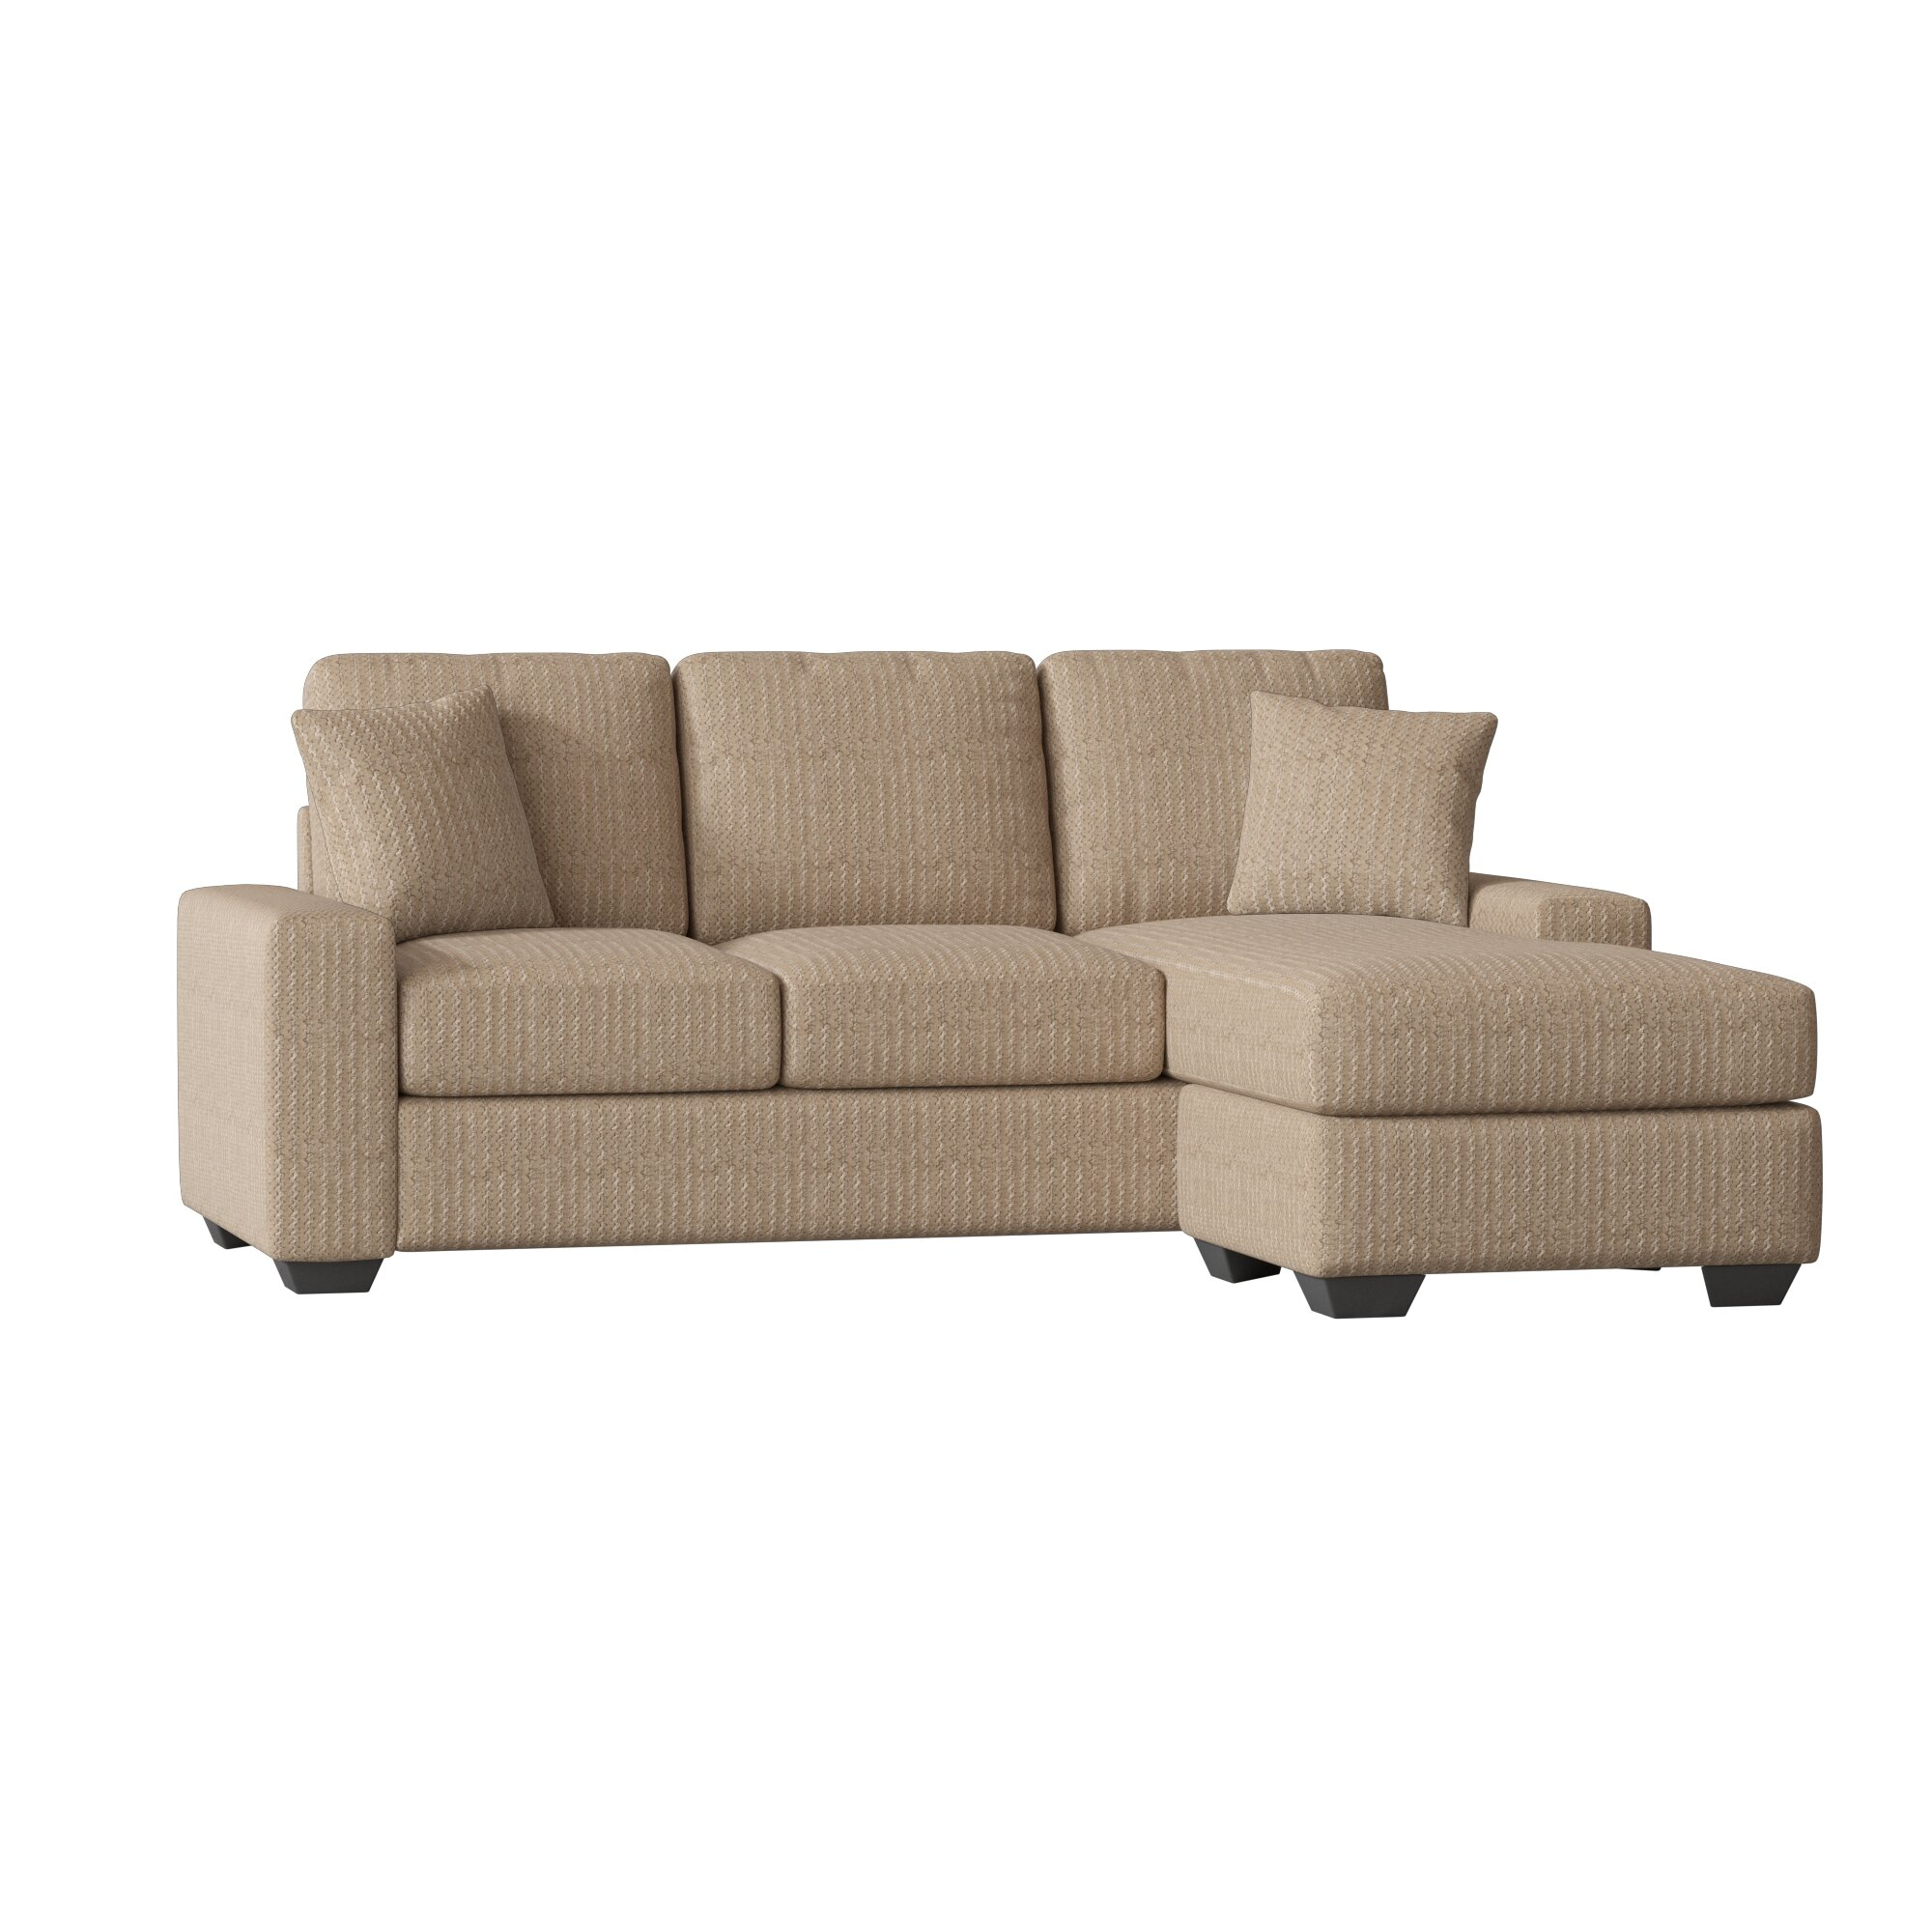 Amazing Harpe Right Hand Facing Sofa Sectional Pabps2019 Chair Design Images Pabps2019Com